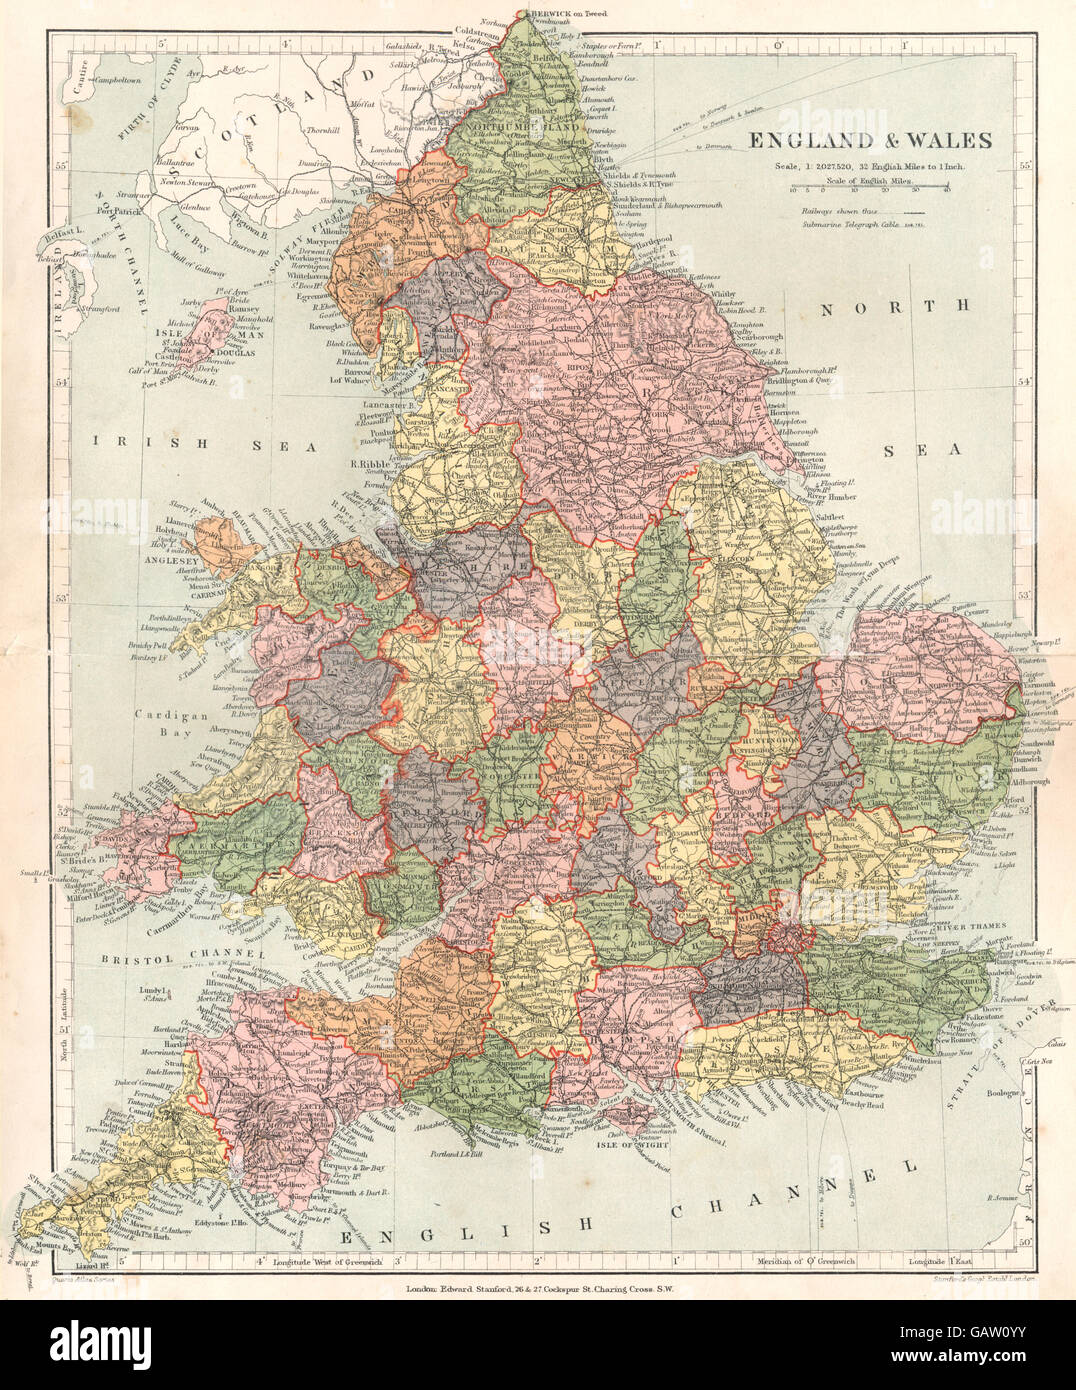 ENGLAND: England & Wales. Stanford, 1892 antique map - Stock Image